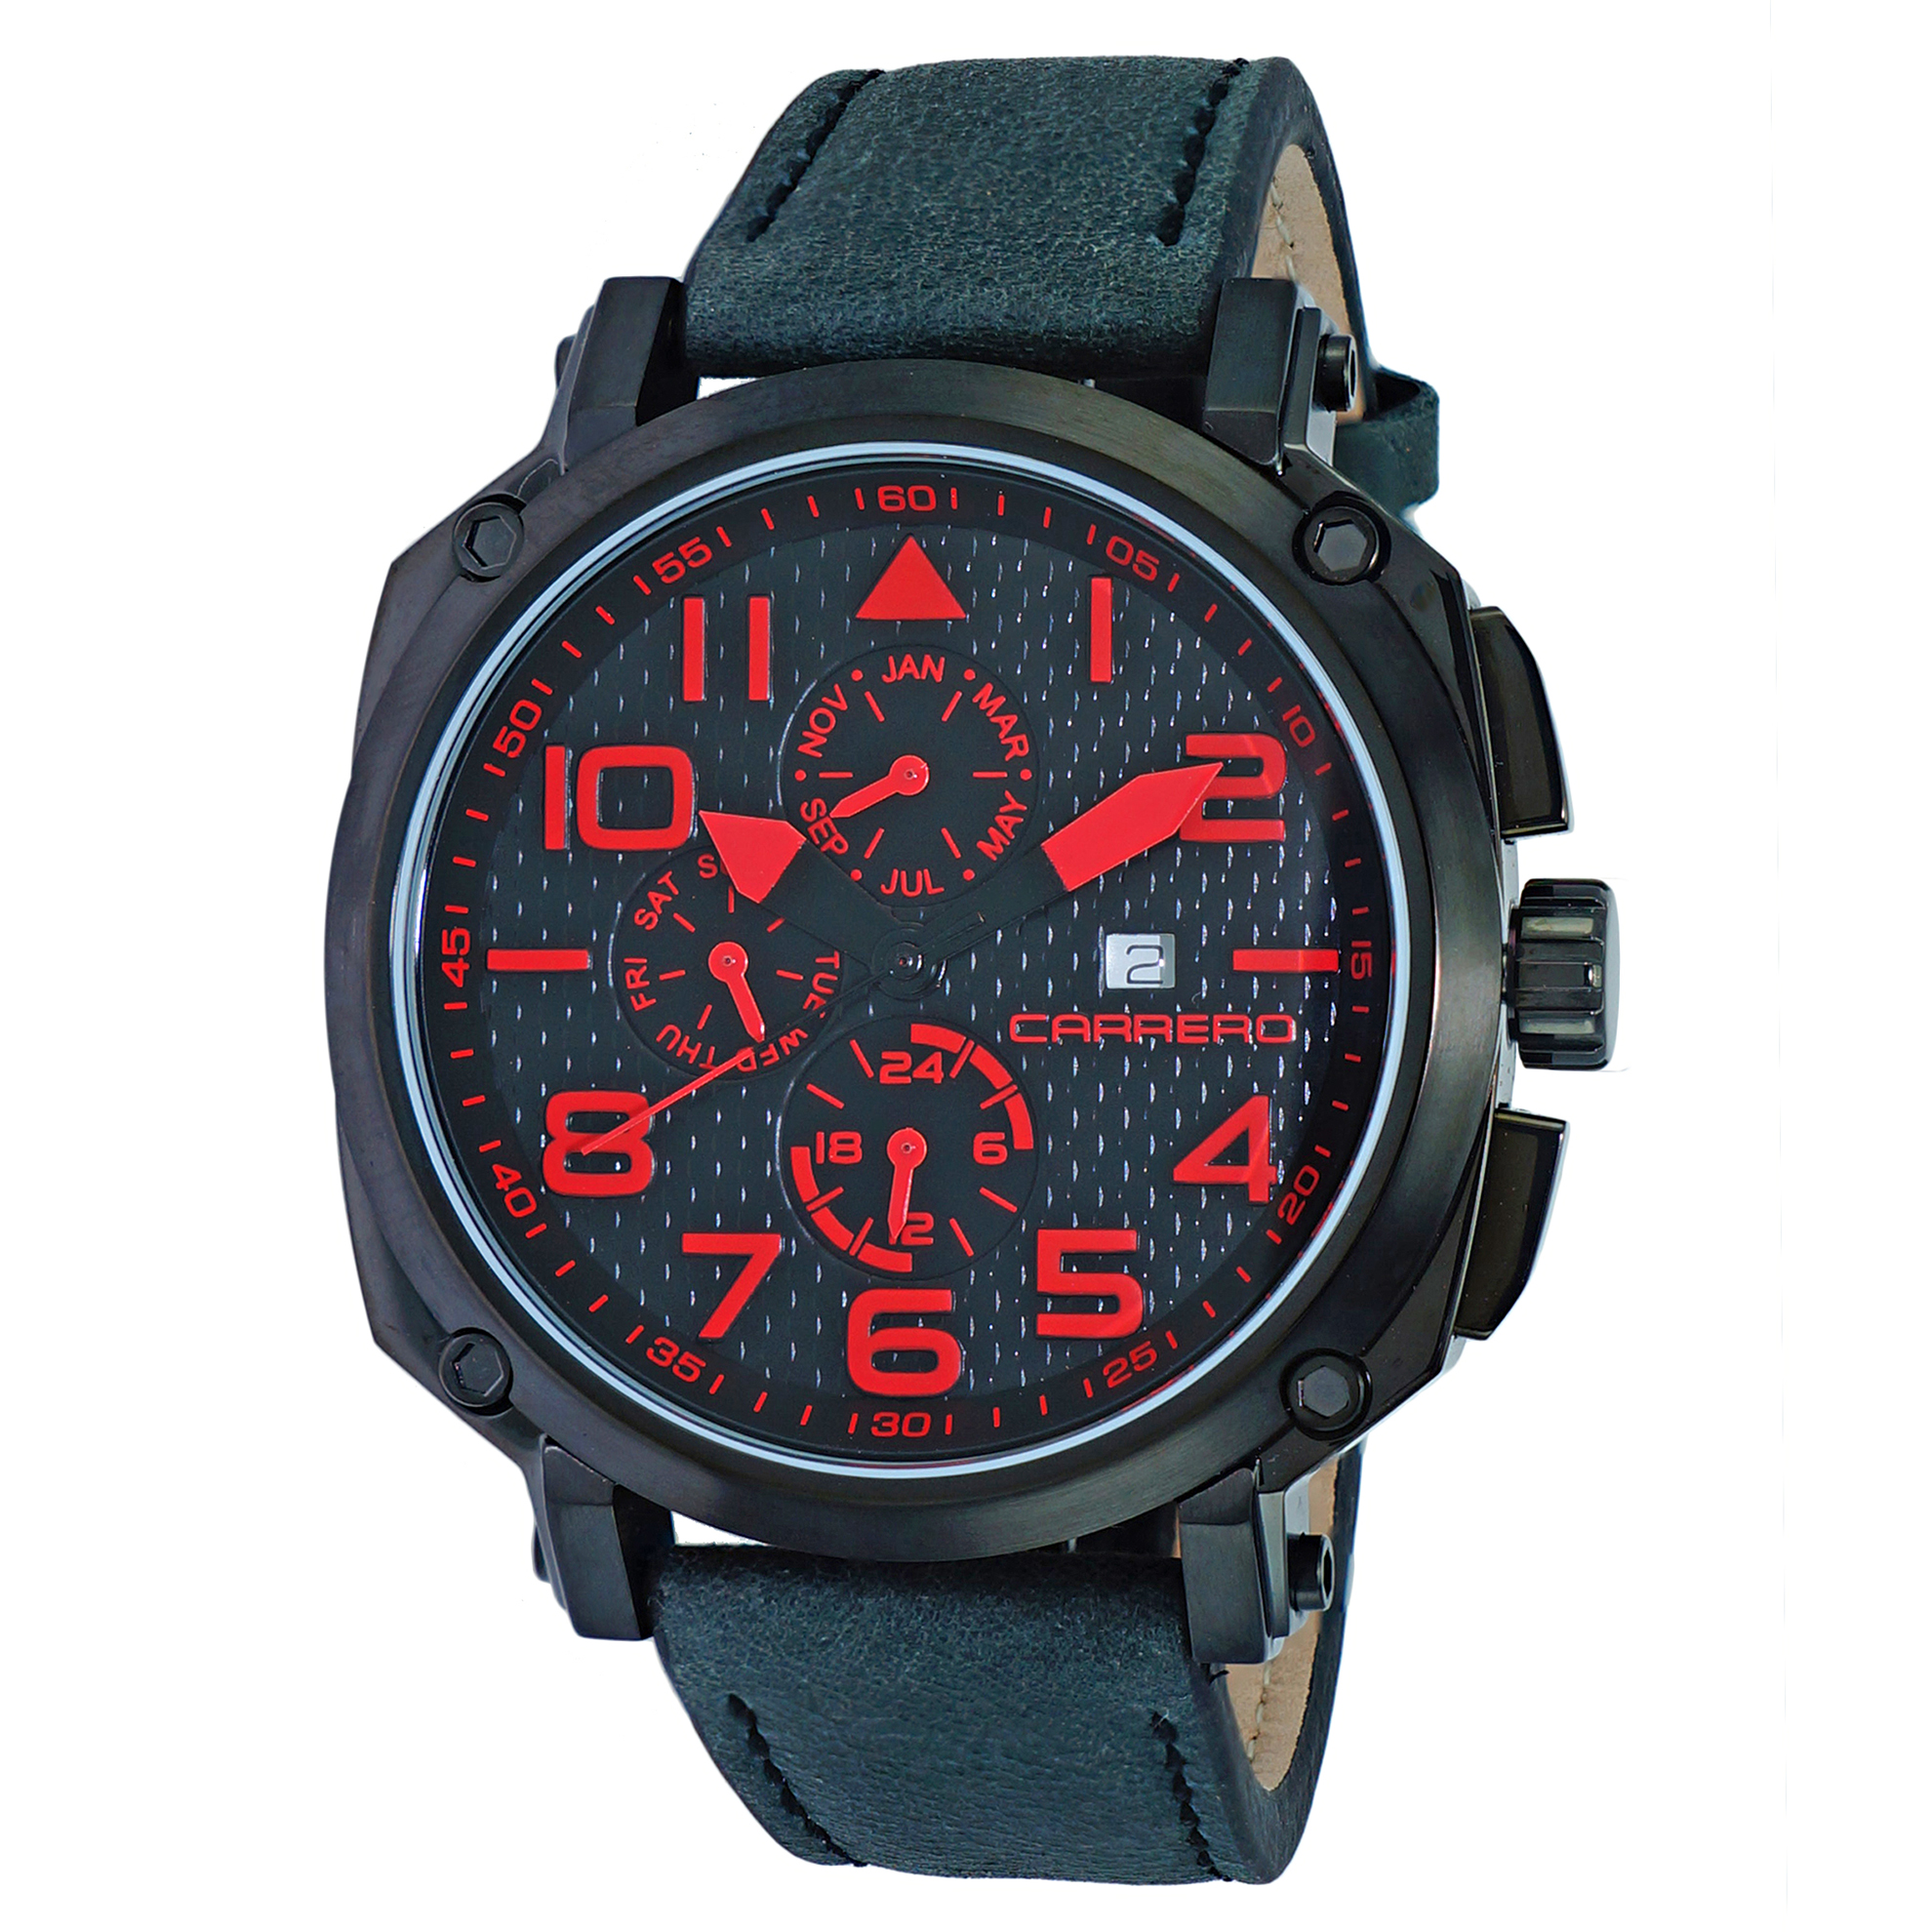 Carrero 9EA141N01 Carrero Special Edition Swiss Multi-Function Red/Black Textured Dial Black Leather Strap